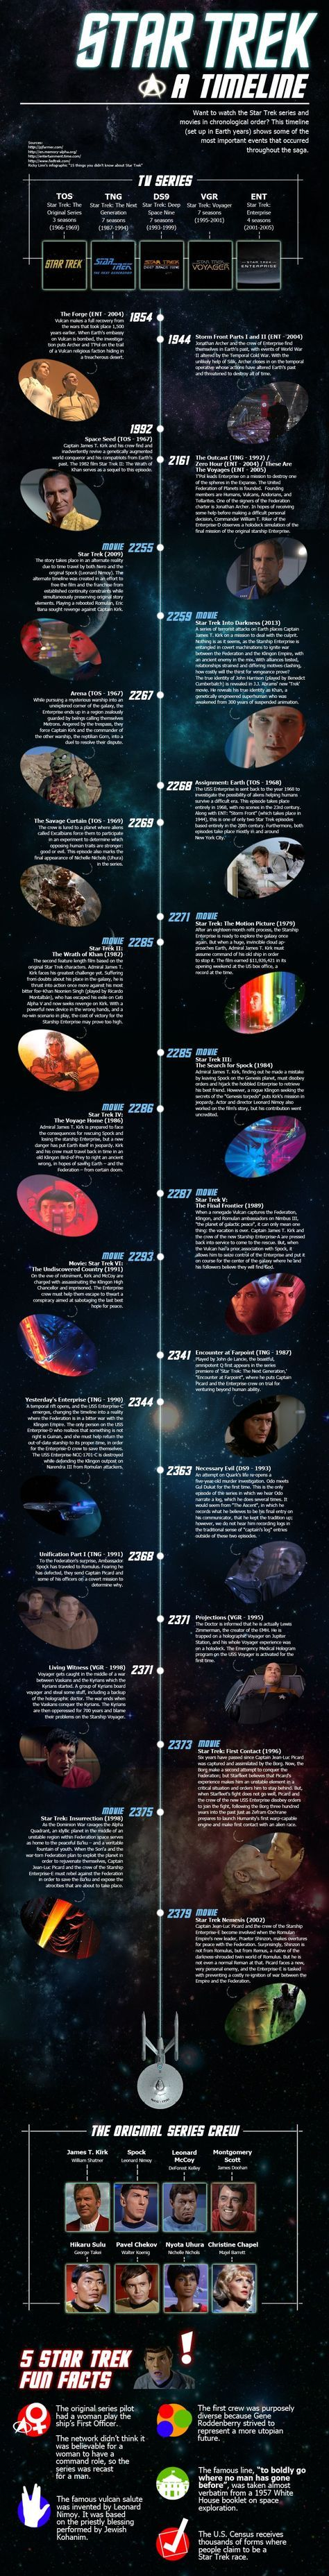 """The history of the Star Trek phenomenon started with Gene Roddenberry but it was fueled by the events of the world around the fans. Space exploration was fast becoming a reality with the """"space race"""" that was raging between the United States and Russia."""